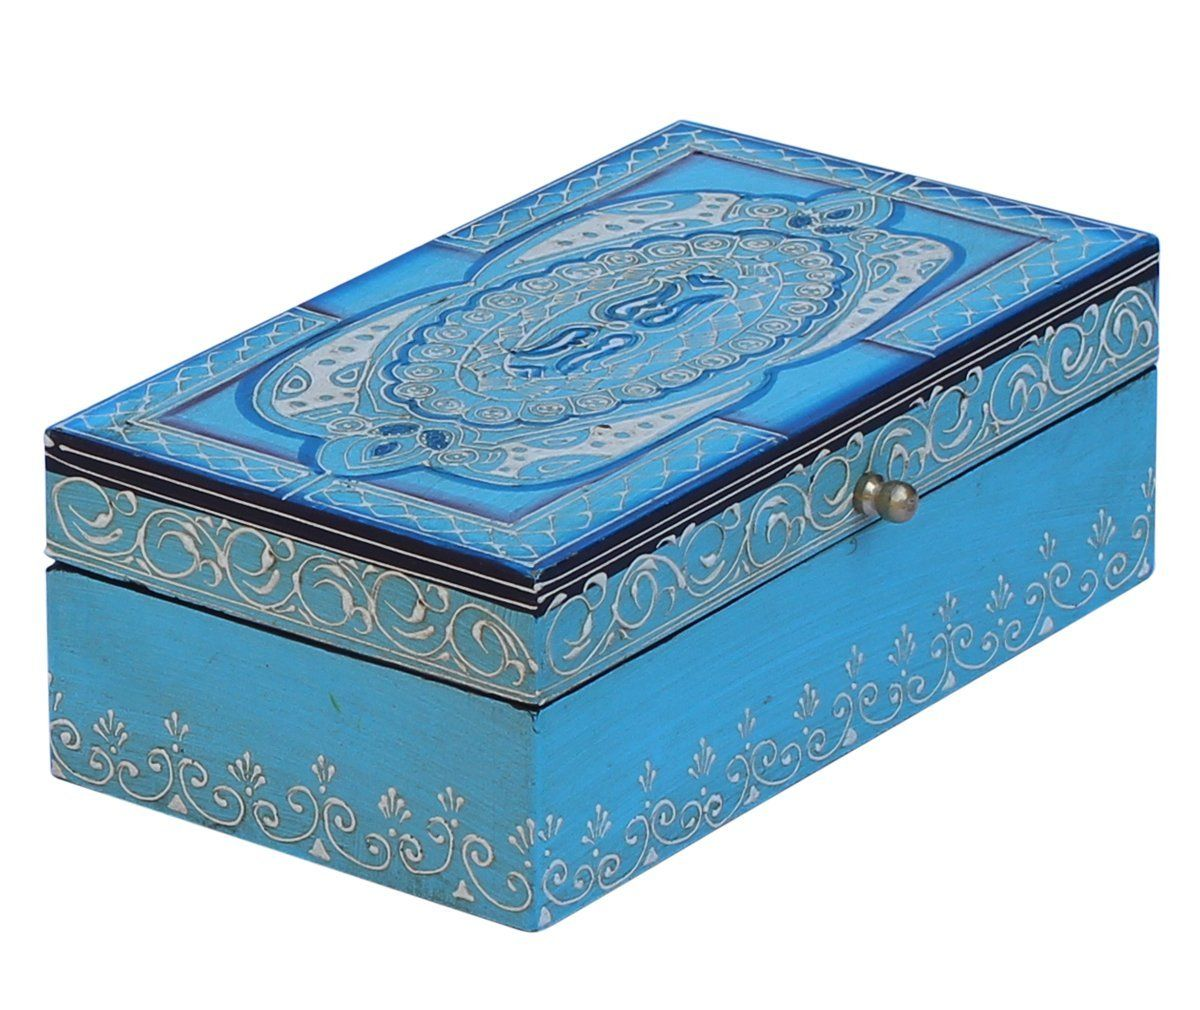 Where To Buy Decorative Boxes Turquoise Blue Decorative Box  Souvnear Jewelry Box Wooden